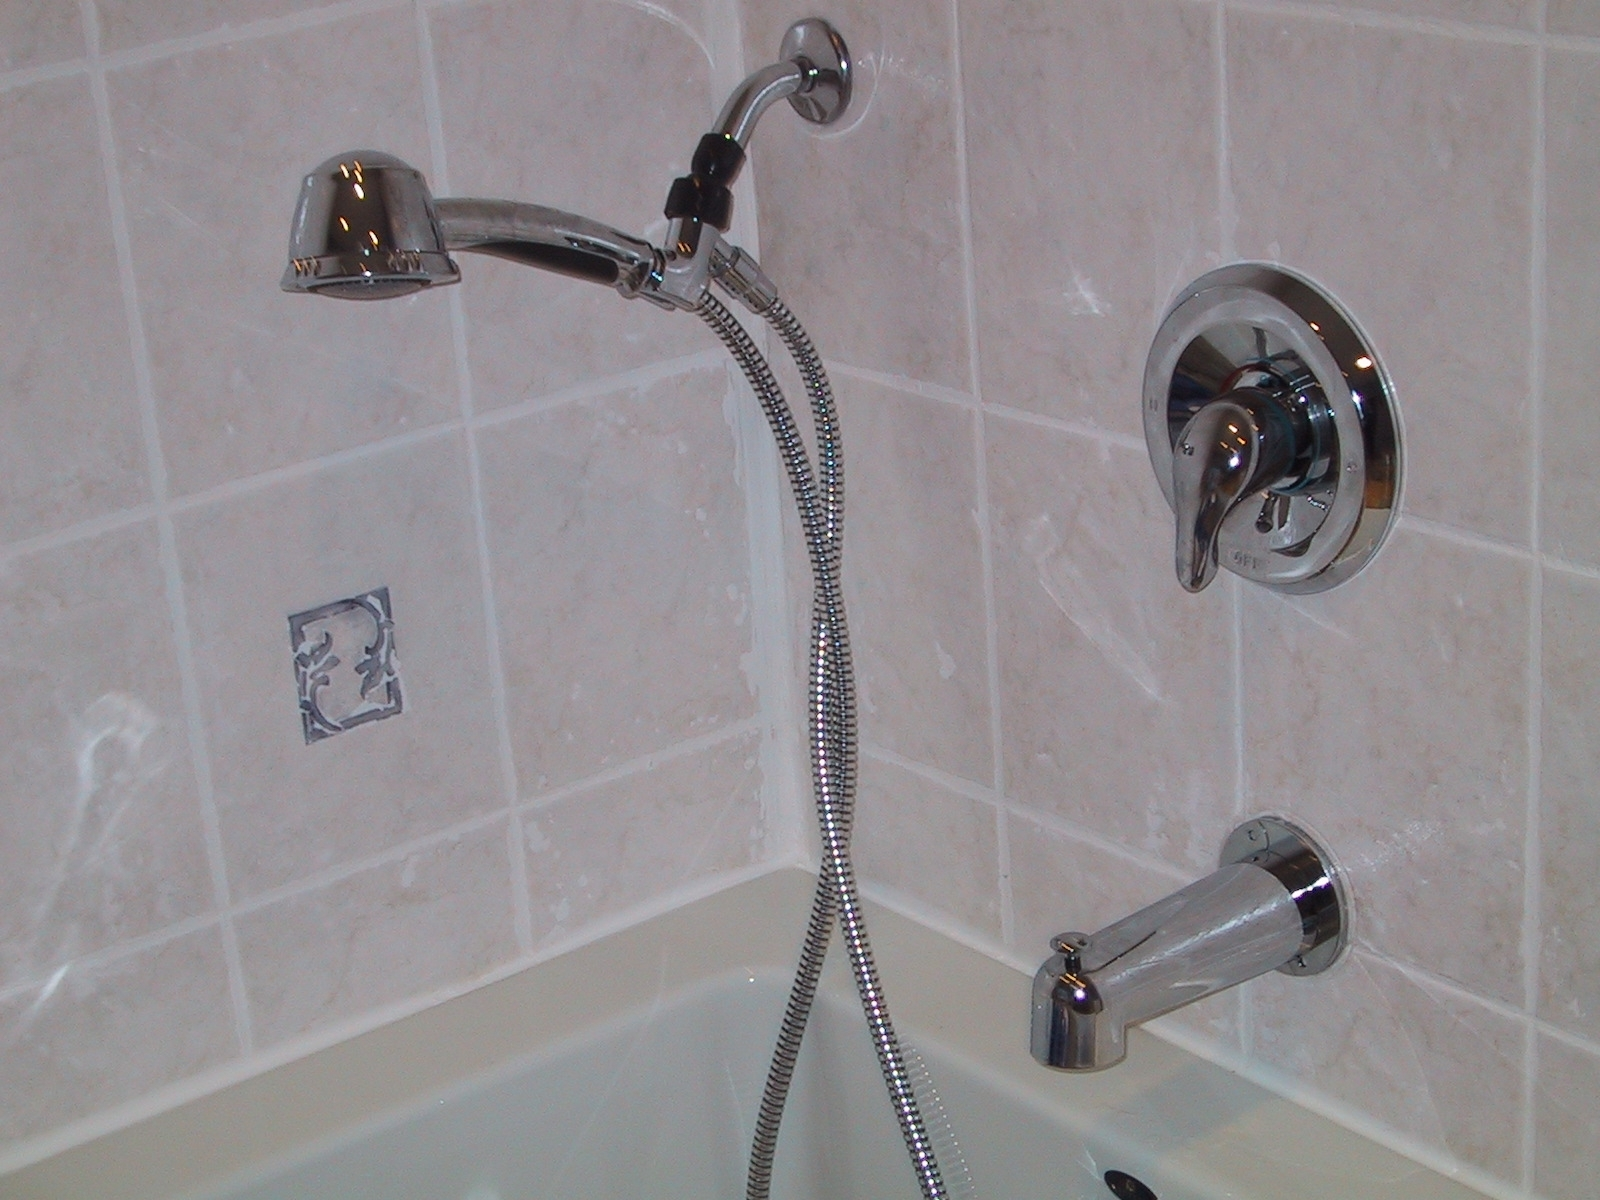 Ideas, shower hose attachment for bathtub showers decoration intended for size 1600 x 1200  .